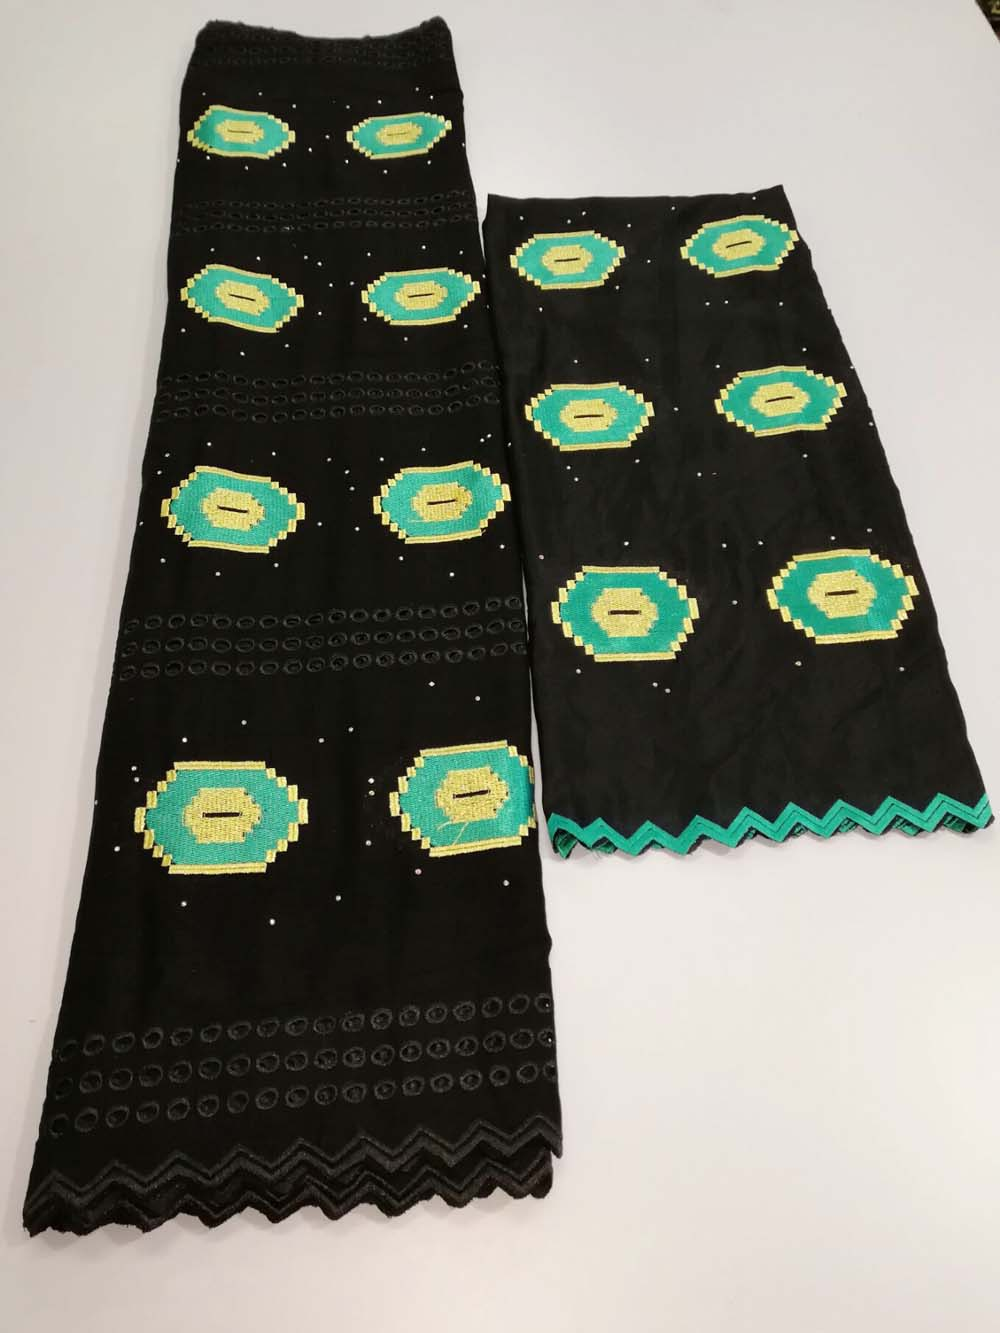 african lace fabric black high quality swiss viole lace with stones 5yard african swiss lace material green for dressafrican lace fabric black high quality swiss viole lace with stones 5yard african swiss lace material green for dress